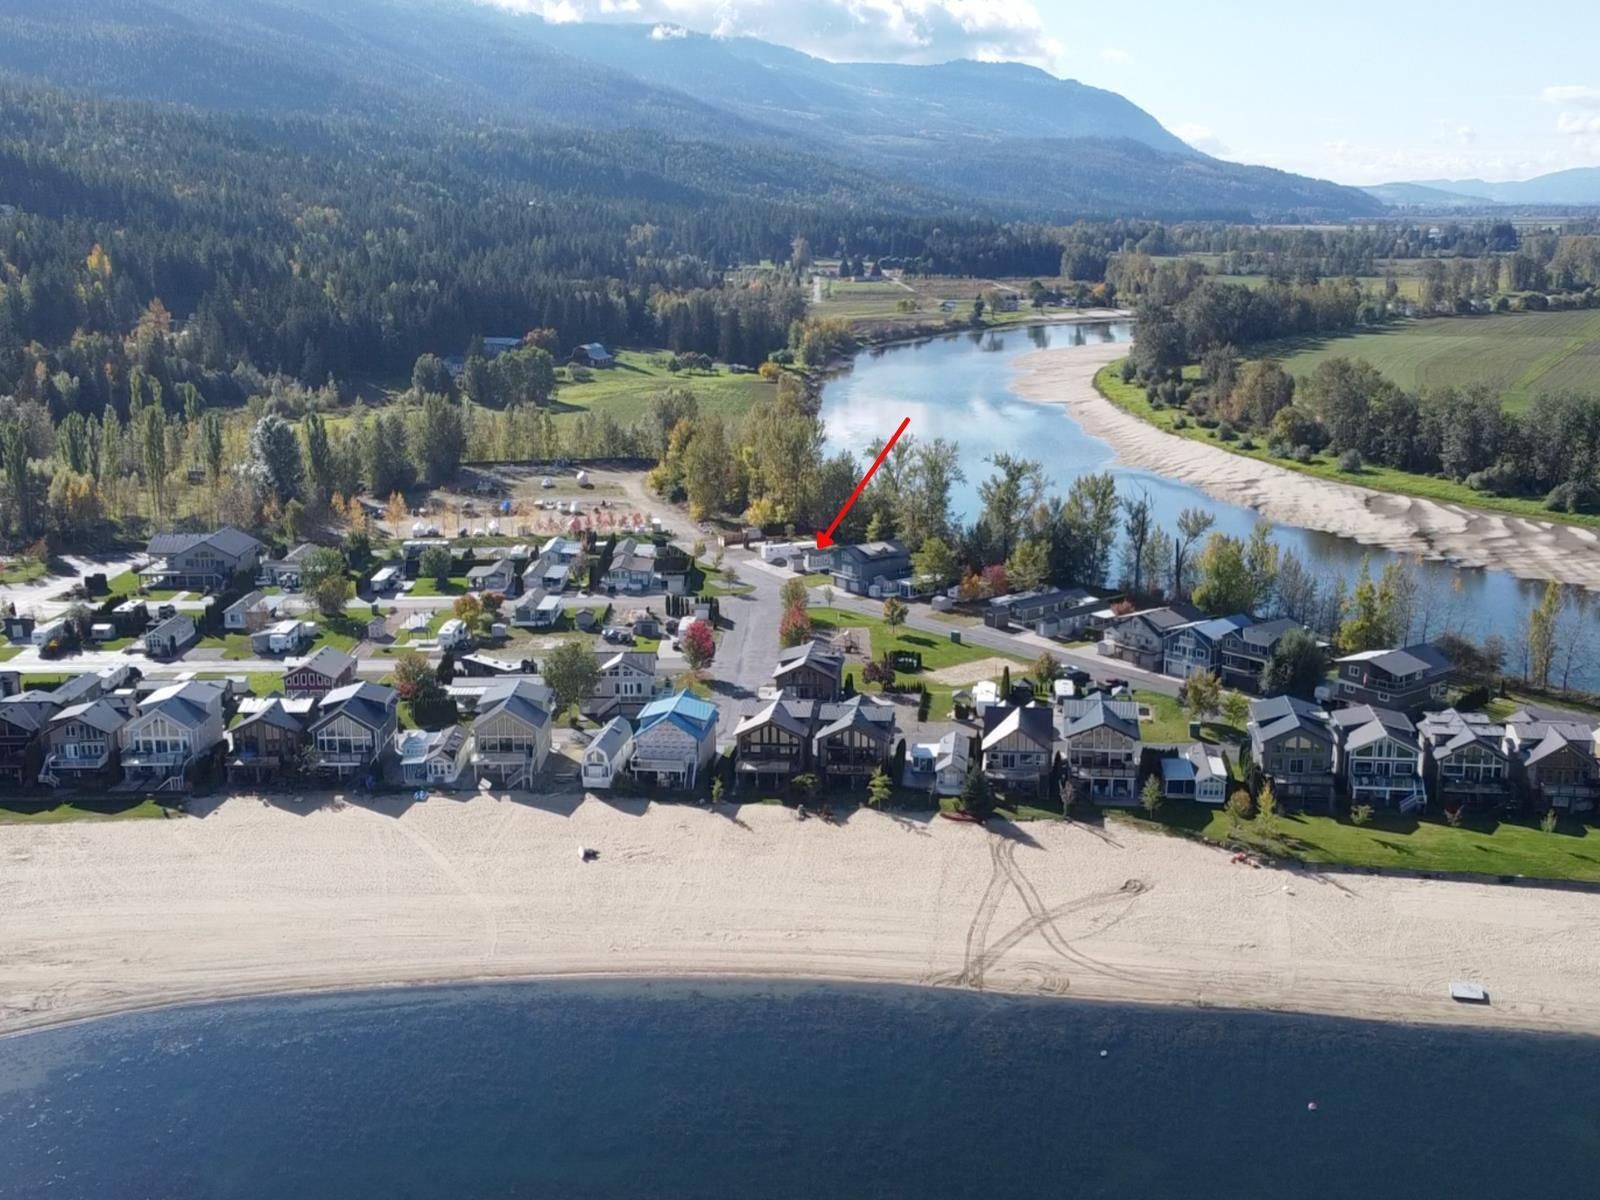 Main Photo: #RS13 8192 97A Highway, in Mara: Recreational for sale : MLS®# 10228147